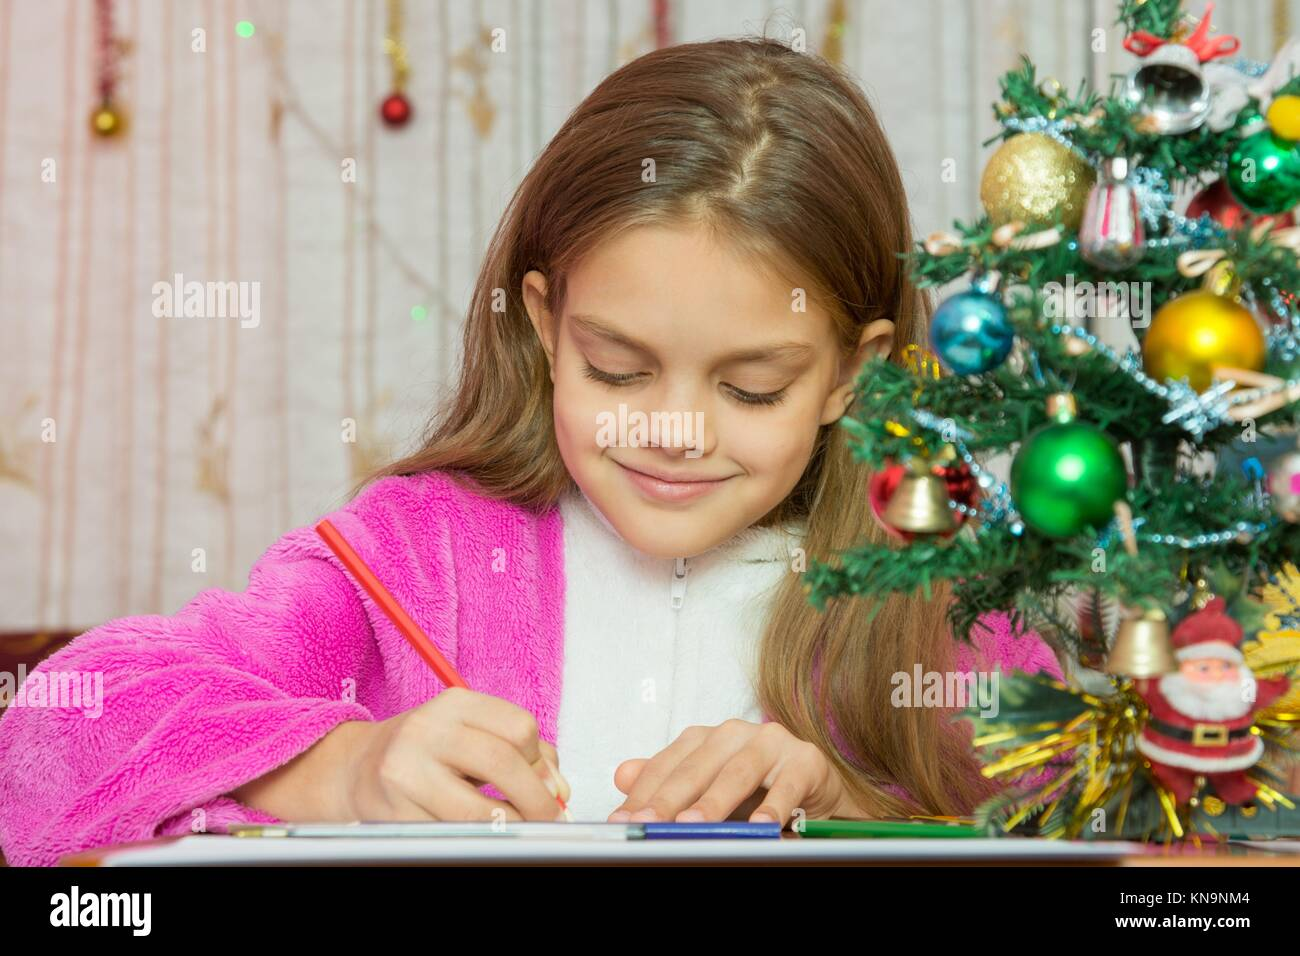 girl writes new year greetings